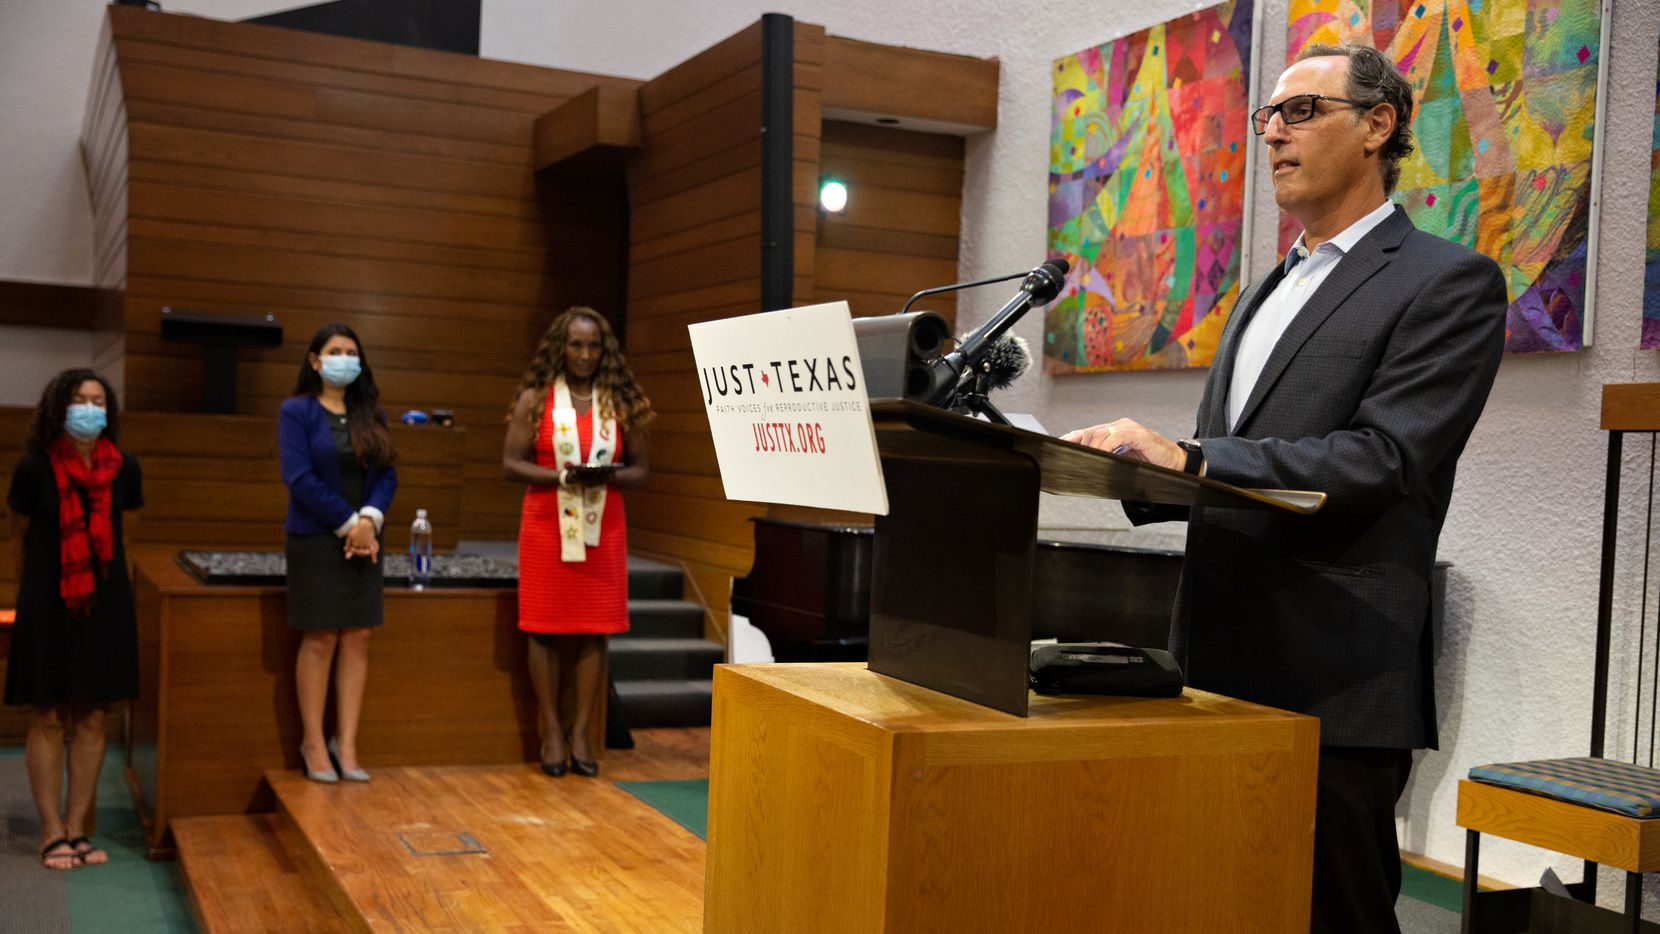 Reverend Daniel Kanter speaks at a press conference held by Just Texas to announce the The Reproductive Freedom Congregation Designation at First Unitarian of Dallas on August 25, 2021. The designation is an initiative by Texas congregations to rid the stigma, shame, and judgment involving women's reproductive decisions.  (Shelby Tauber/Special Contributor)